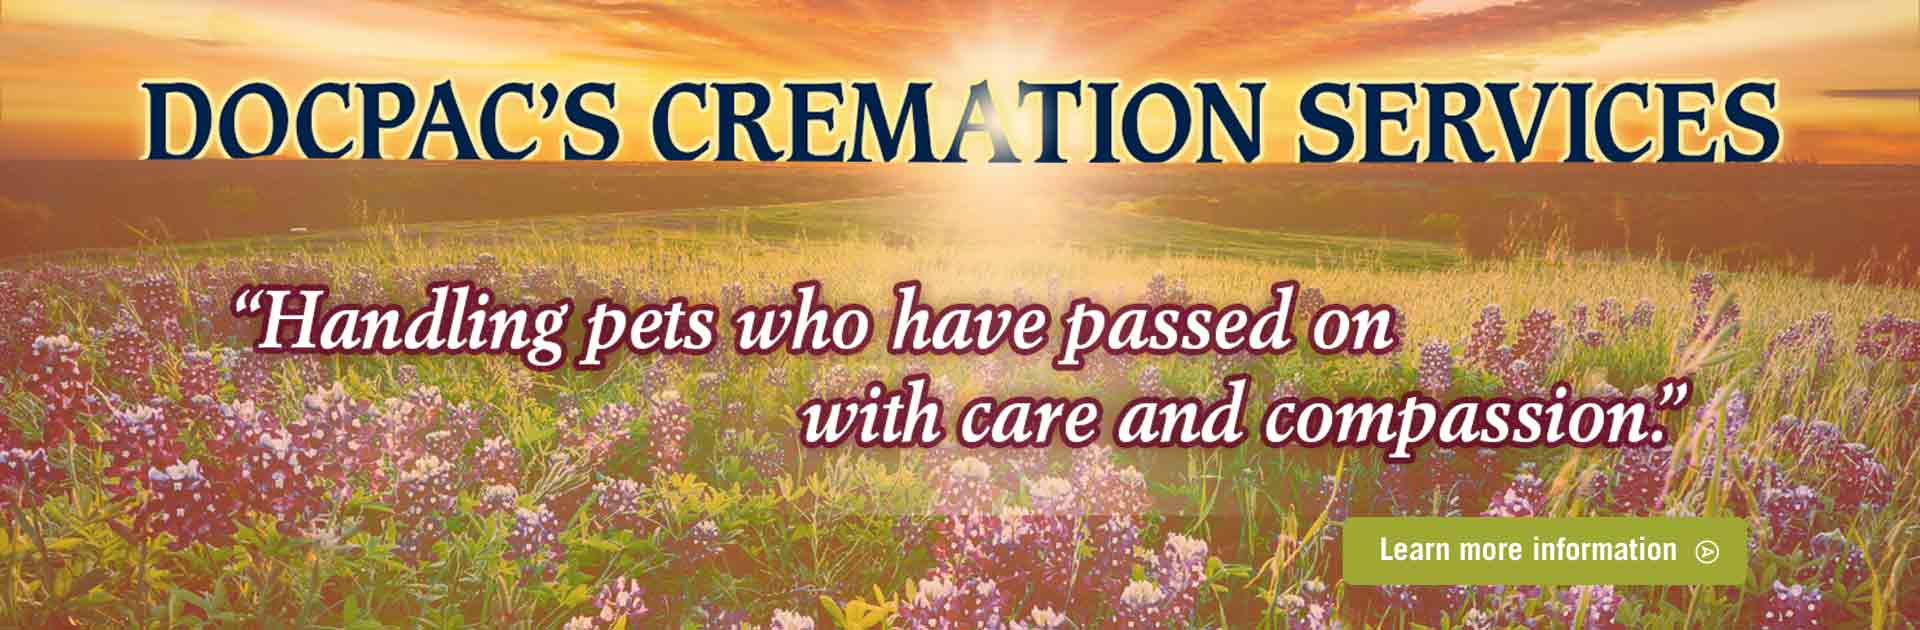 DOCPAC's Cremation Services (Image of a field of flowers and a sunset)